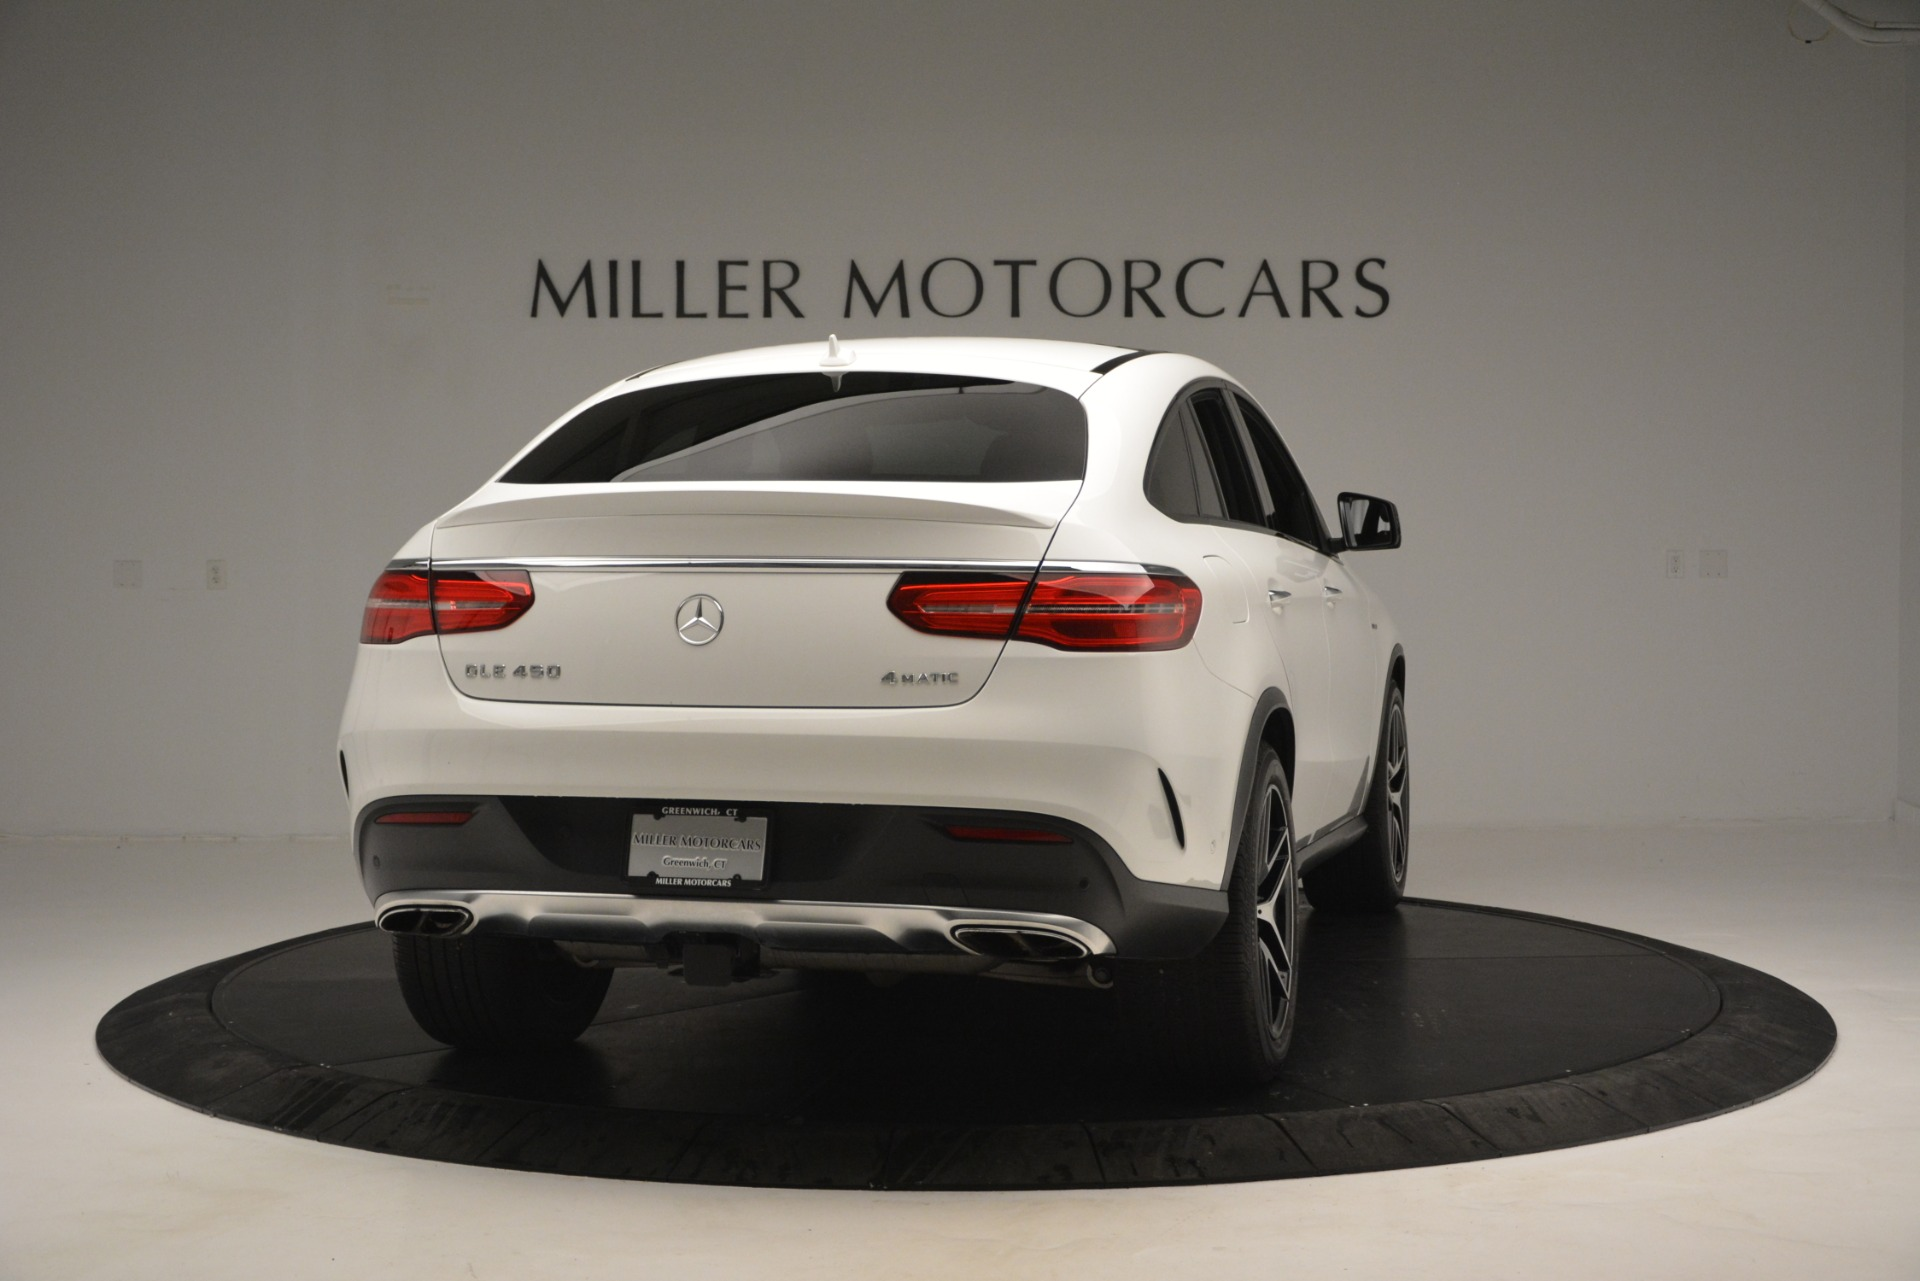 Used 2016 Mercedes-Benz GLE 450 AMG Coupe 4MATIC For Sale In Westport, CT 2787_p7